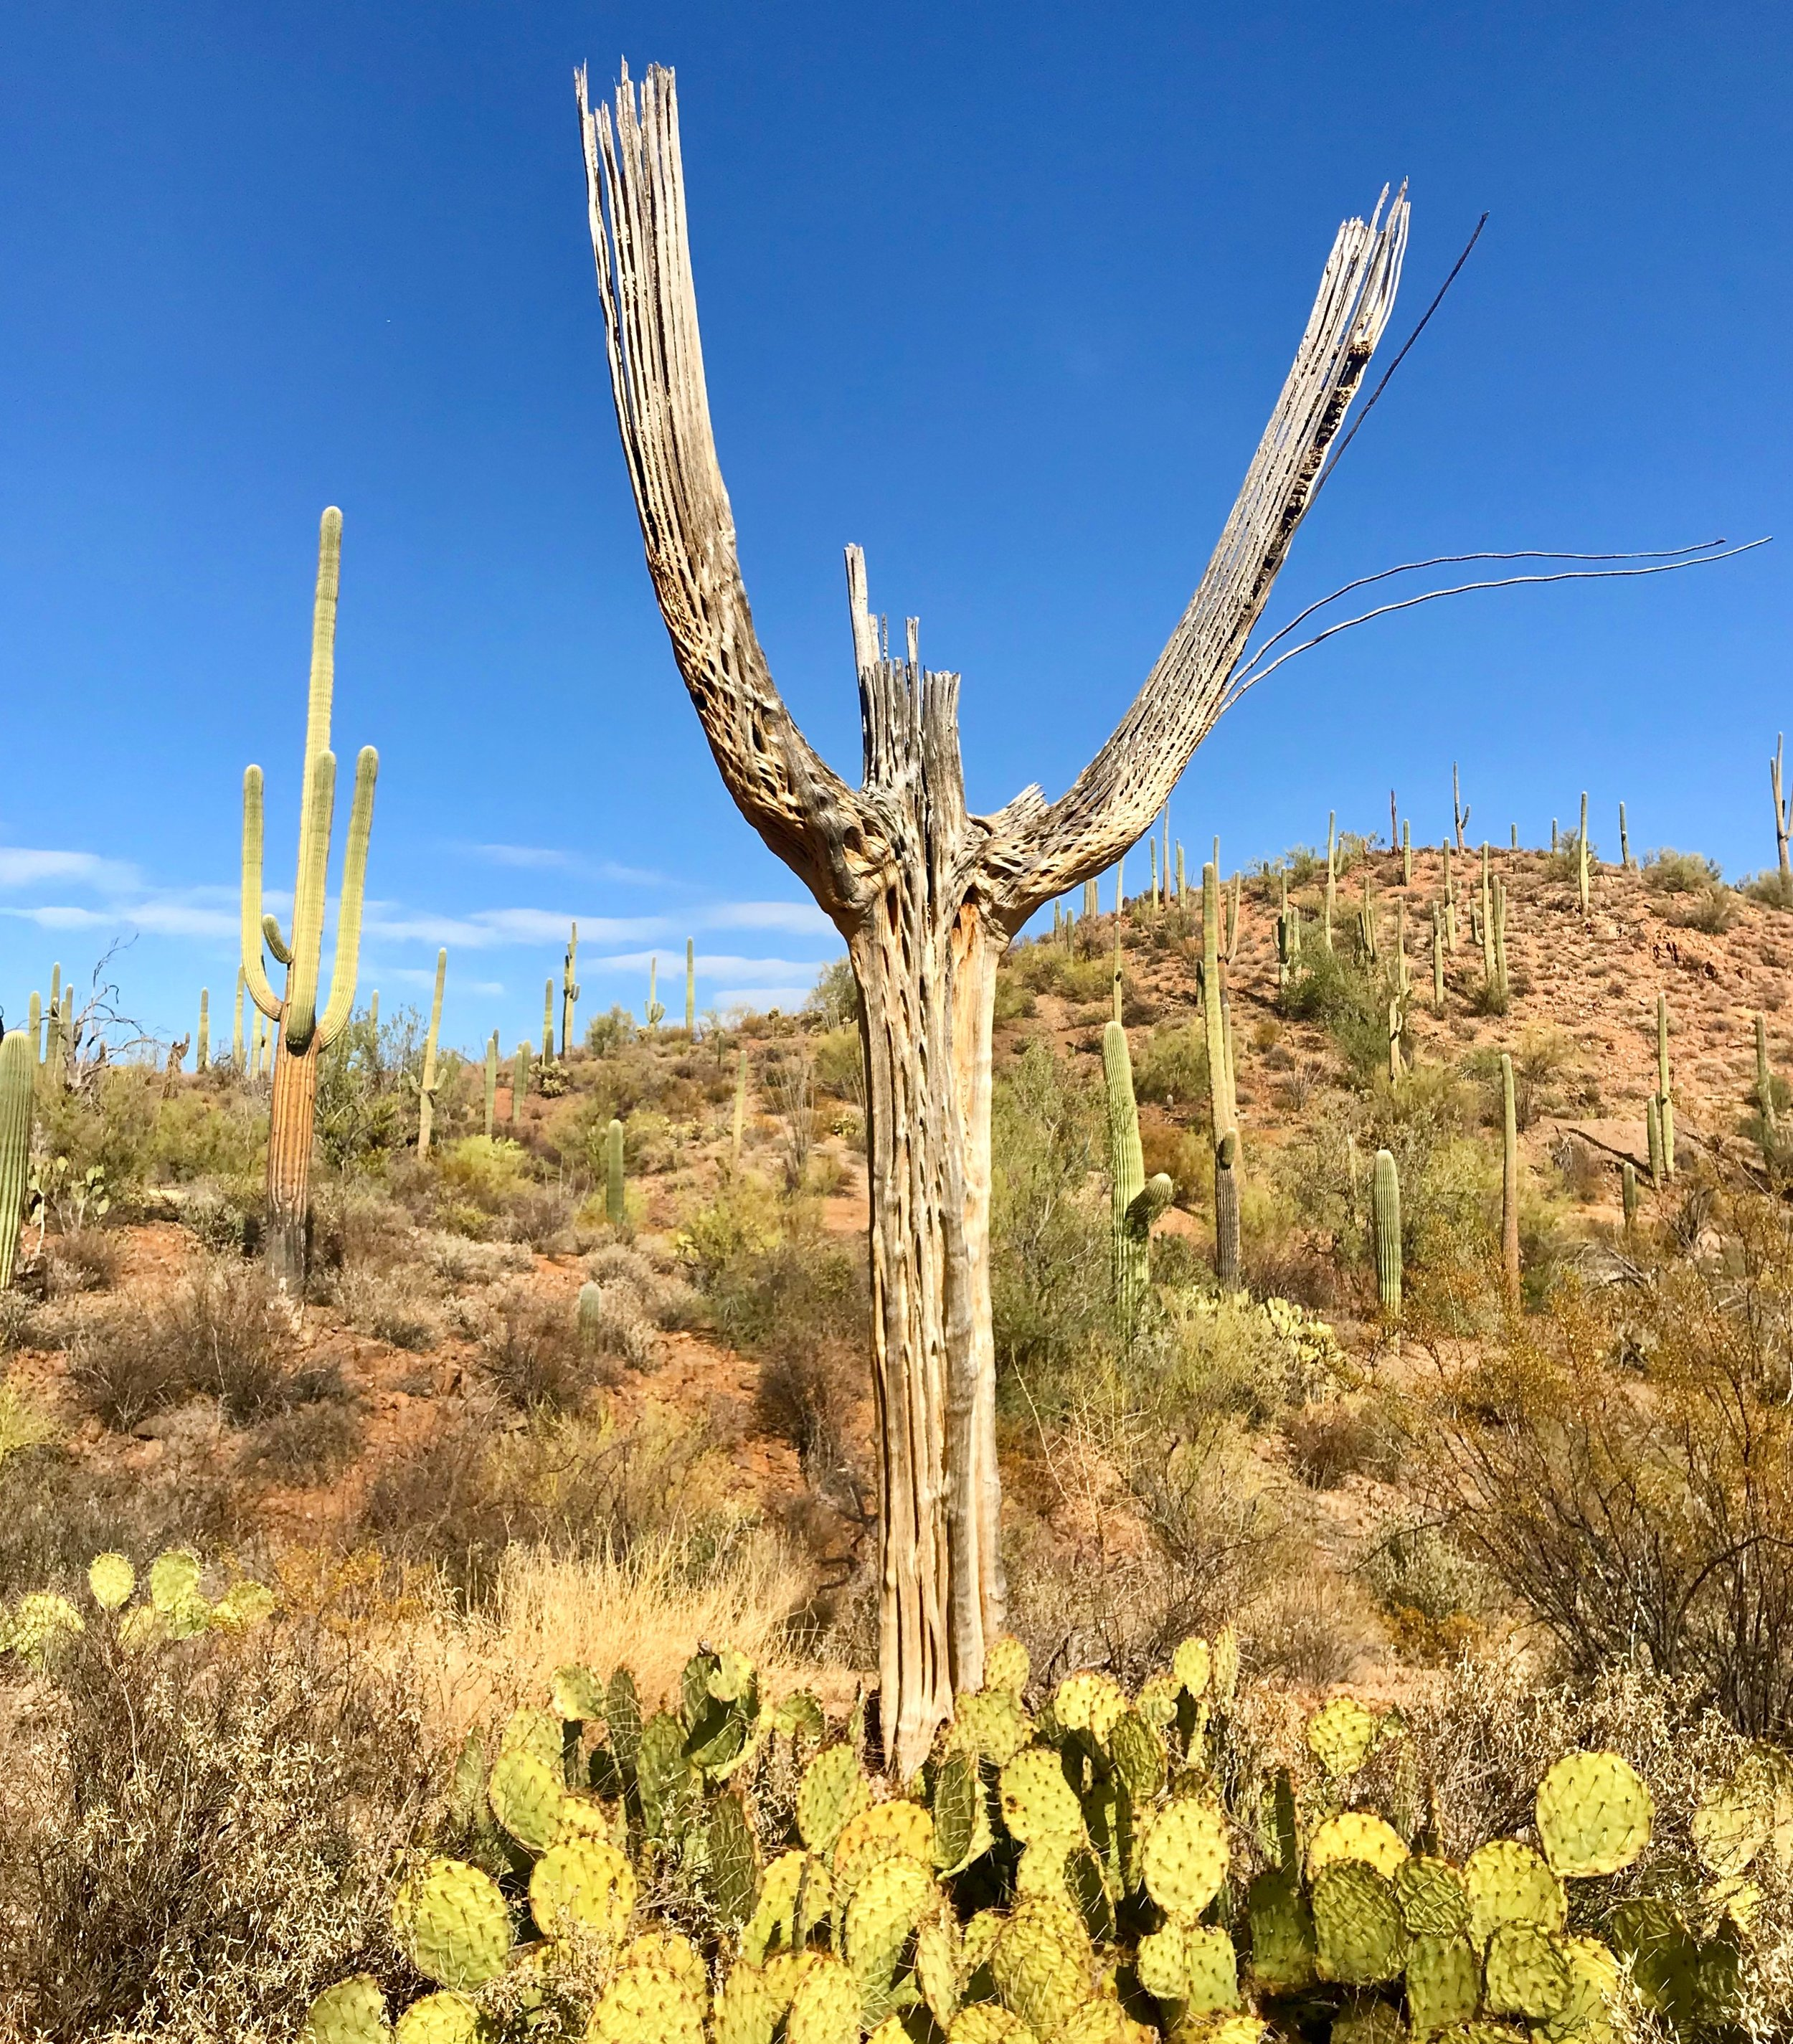 This saguaro cactus appears to rejoicing in the day, even in its afterlife